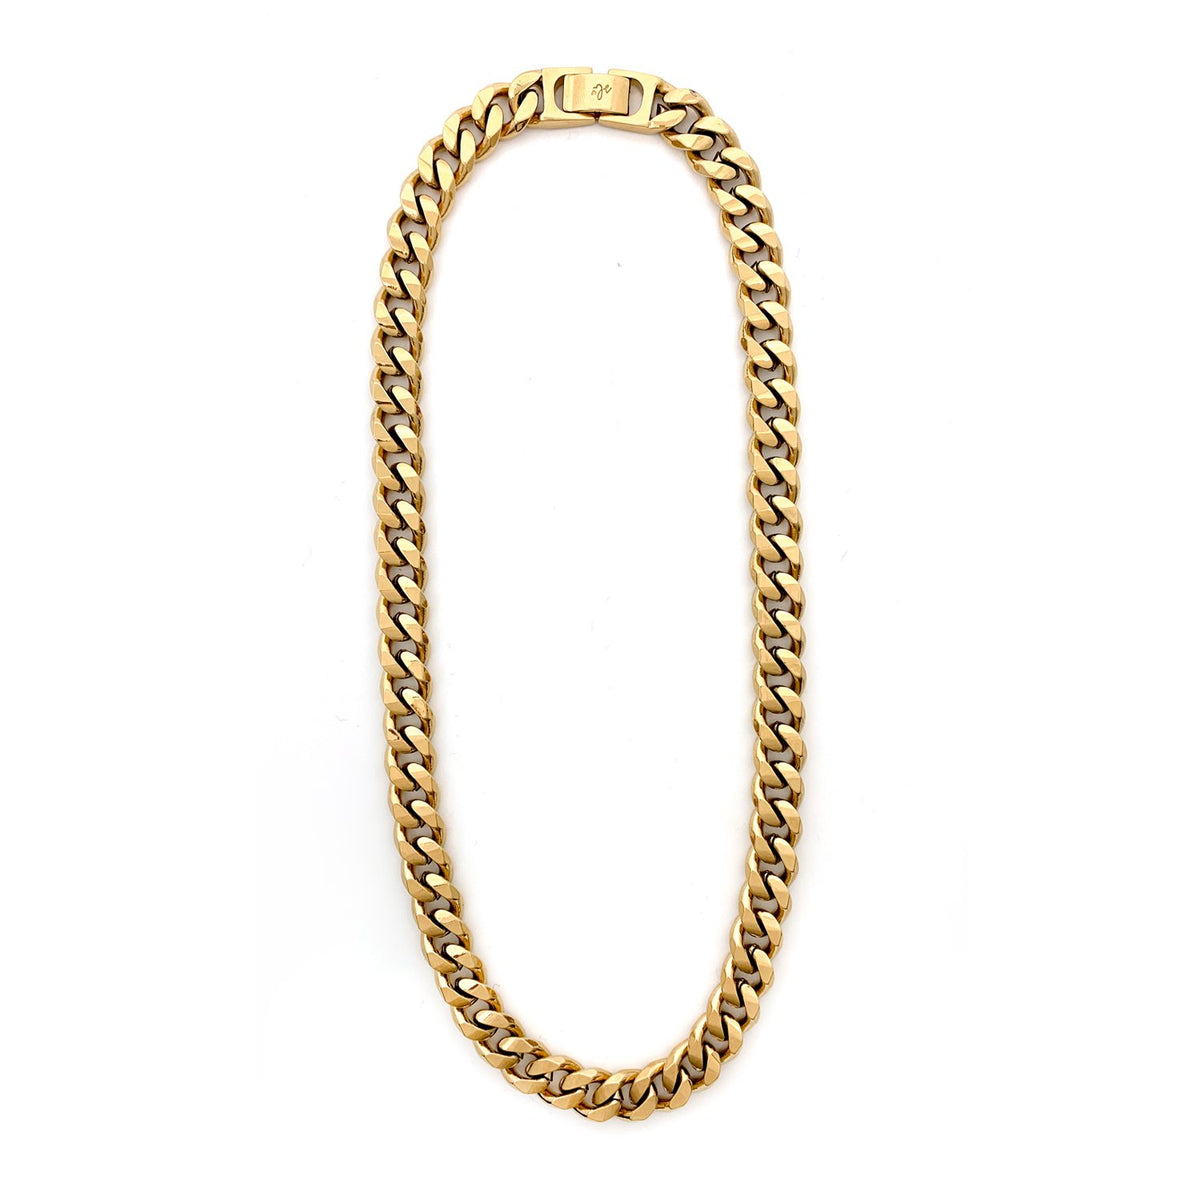 A medium length gold curb chain necklace on a white background